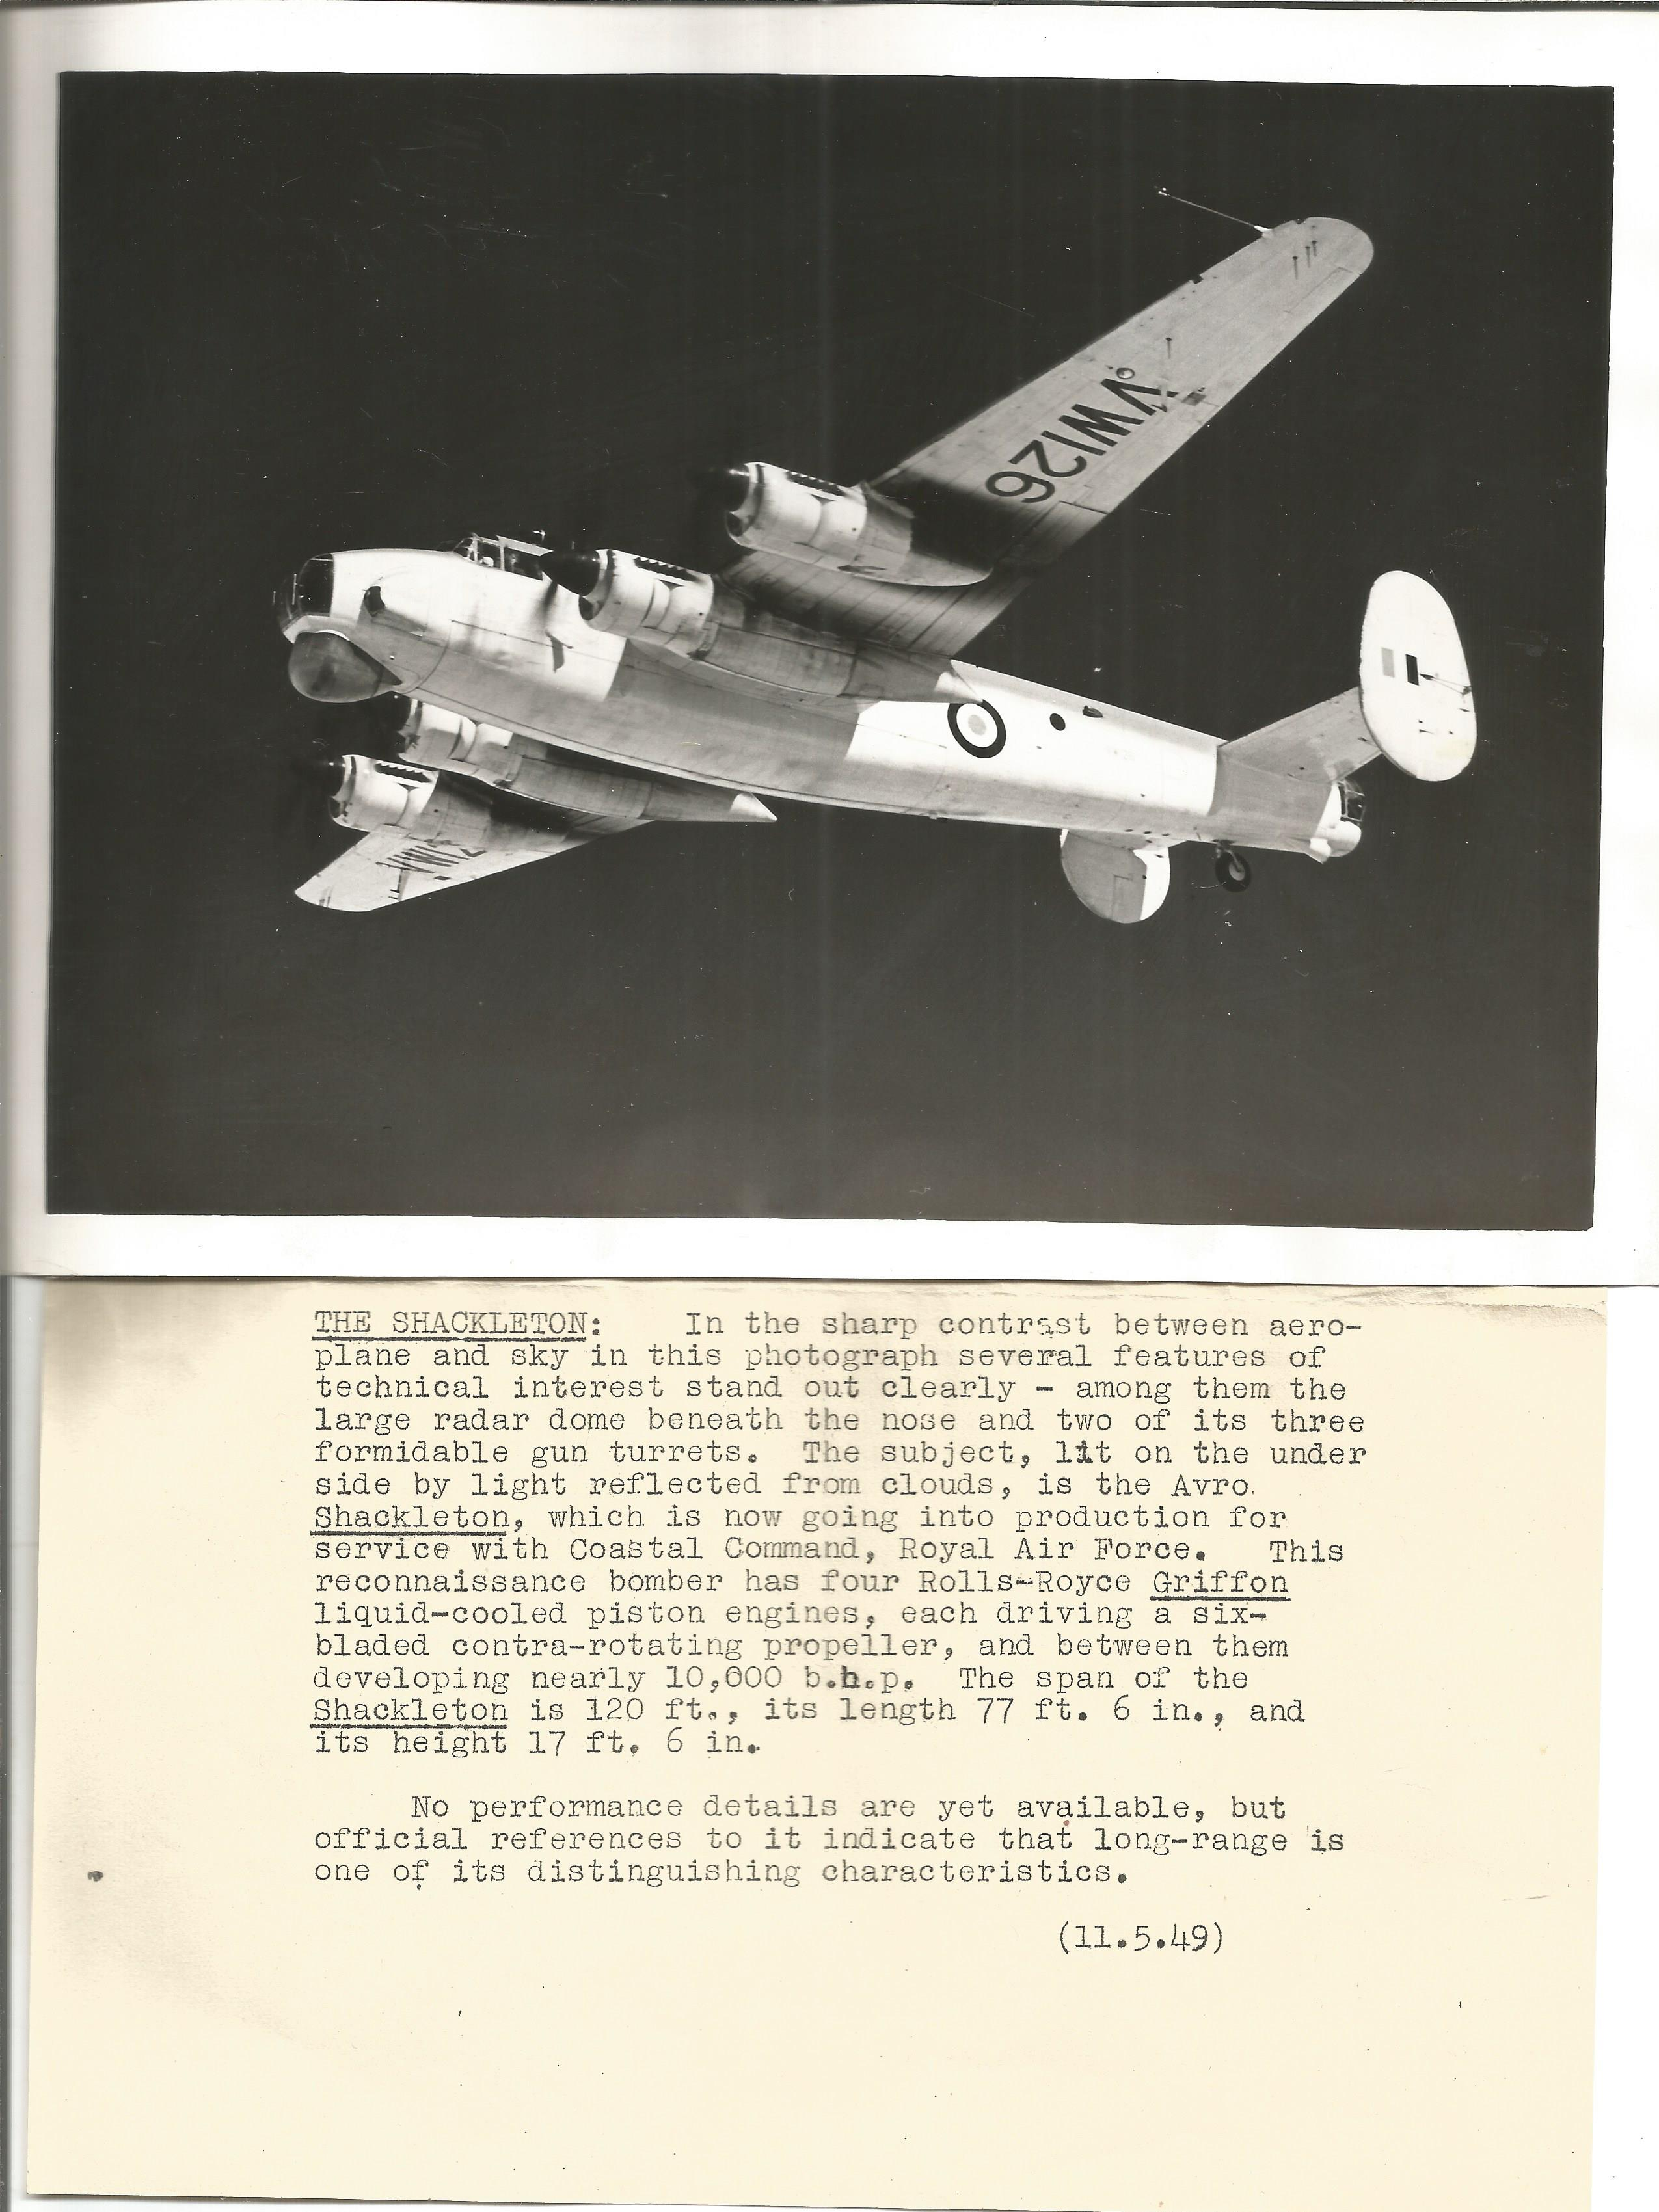 Aviation Shackleton collection includes to original 9x7 black and white photos dated 11. 5. 49 and a - Image 2 of 3